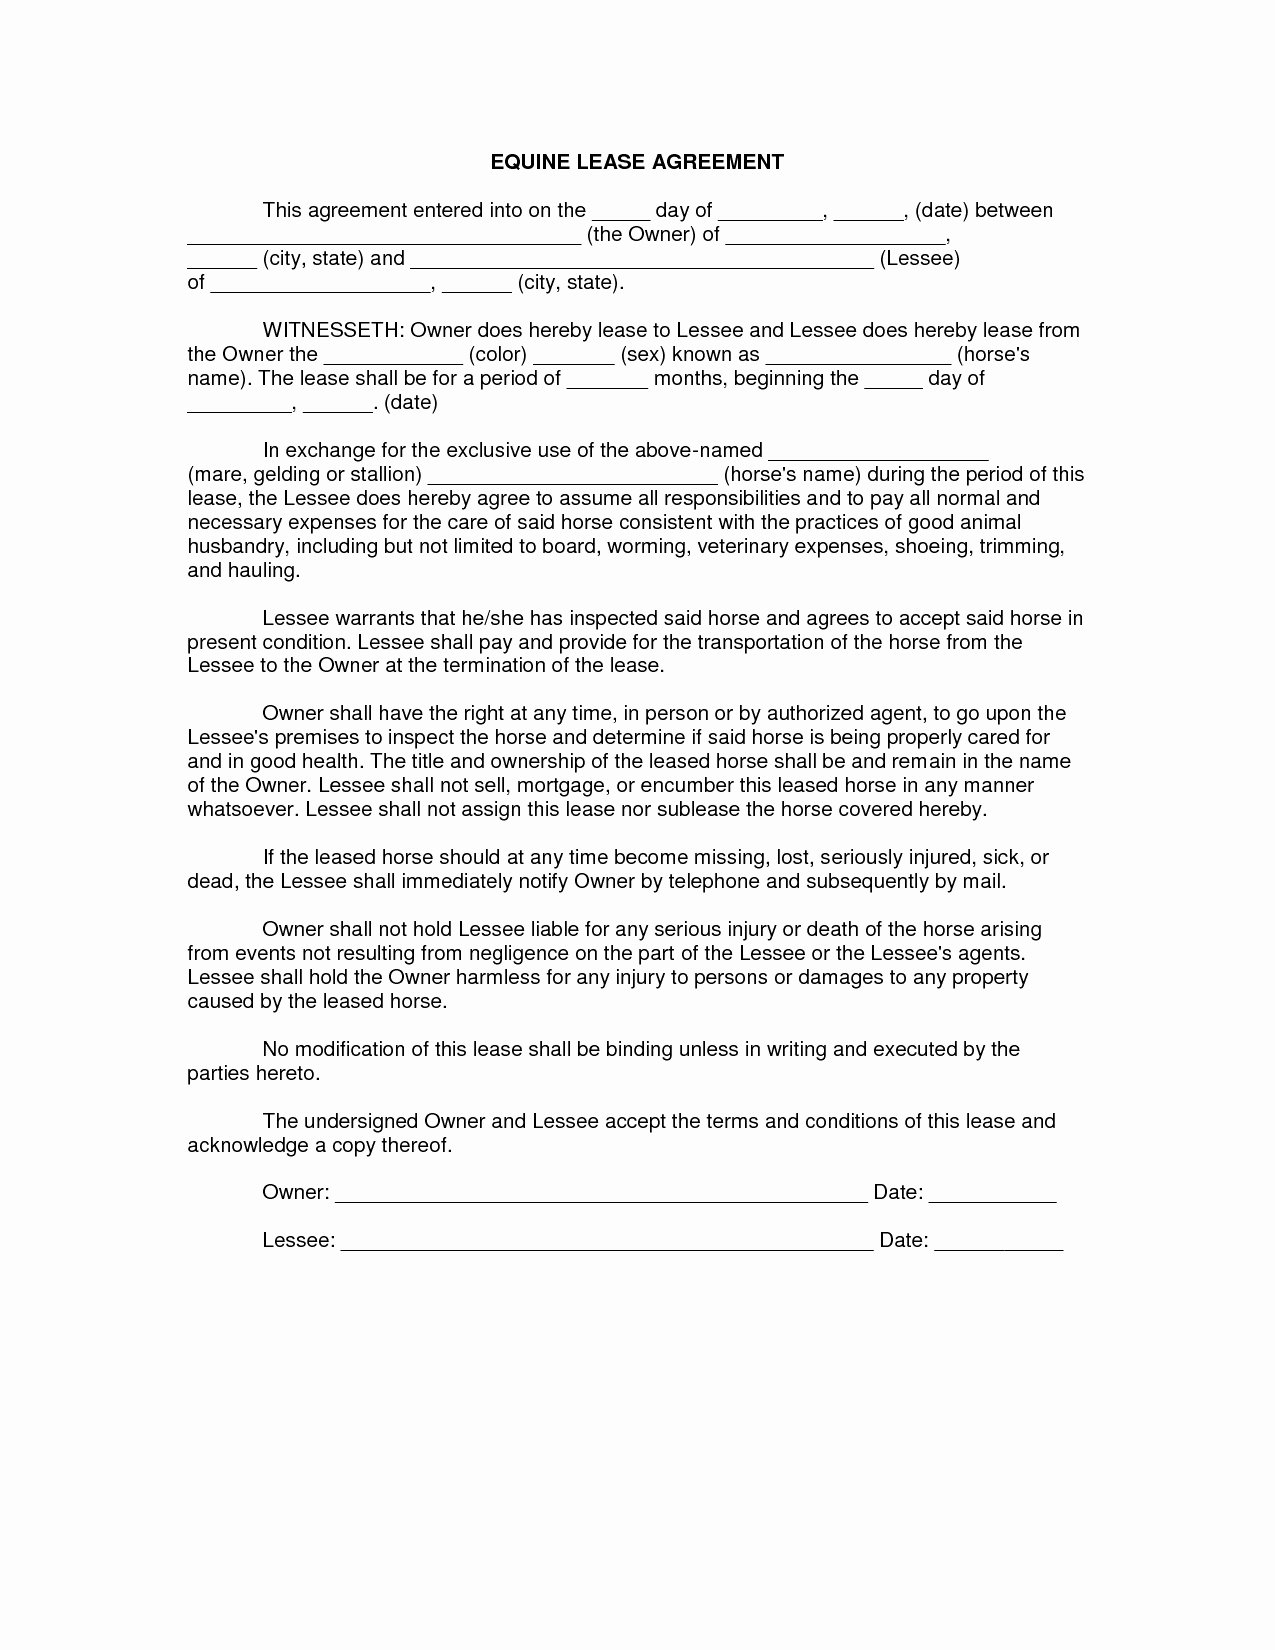 Horse Lease Agreement Templates Beautiful Equine Lease Agreement